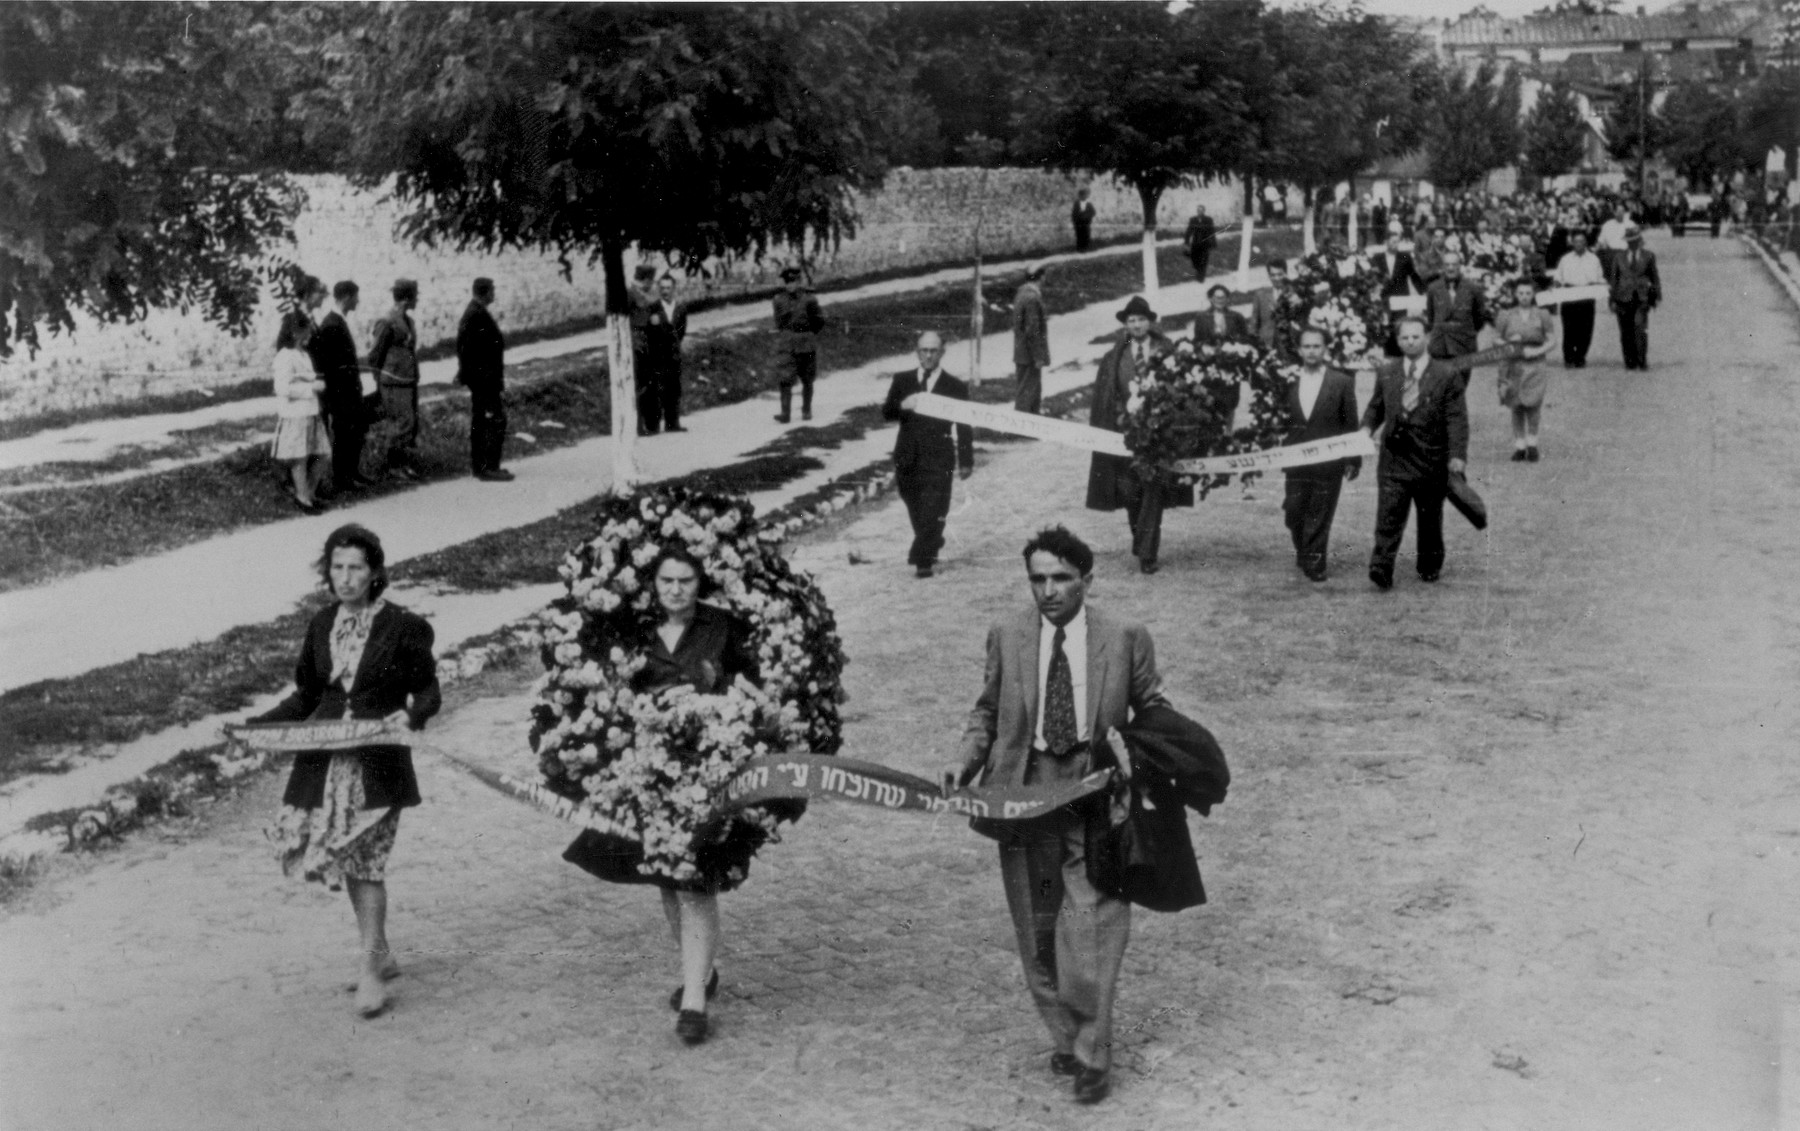 Funeral procession for the victims of the Kielce pogrom.